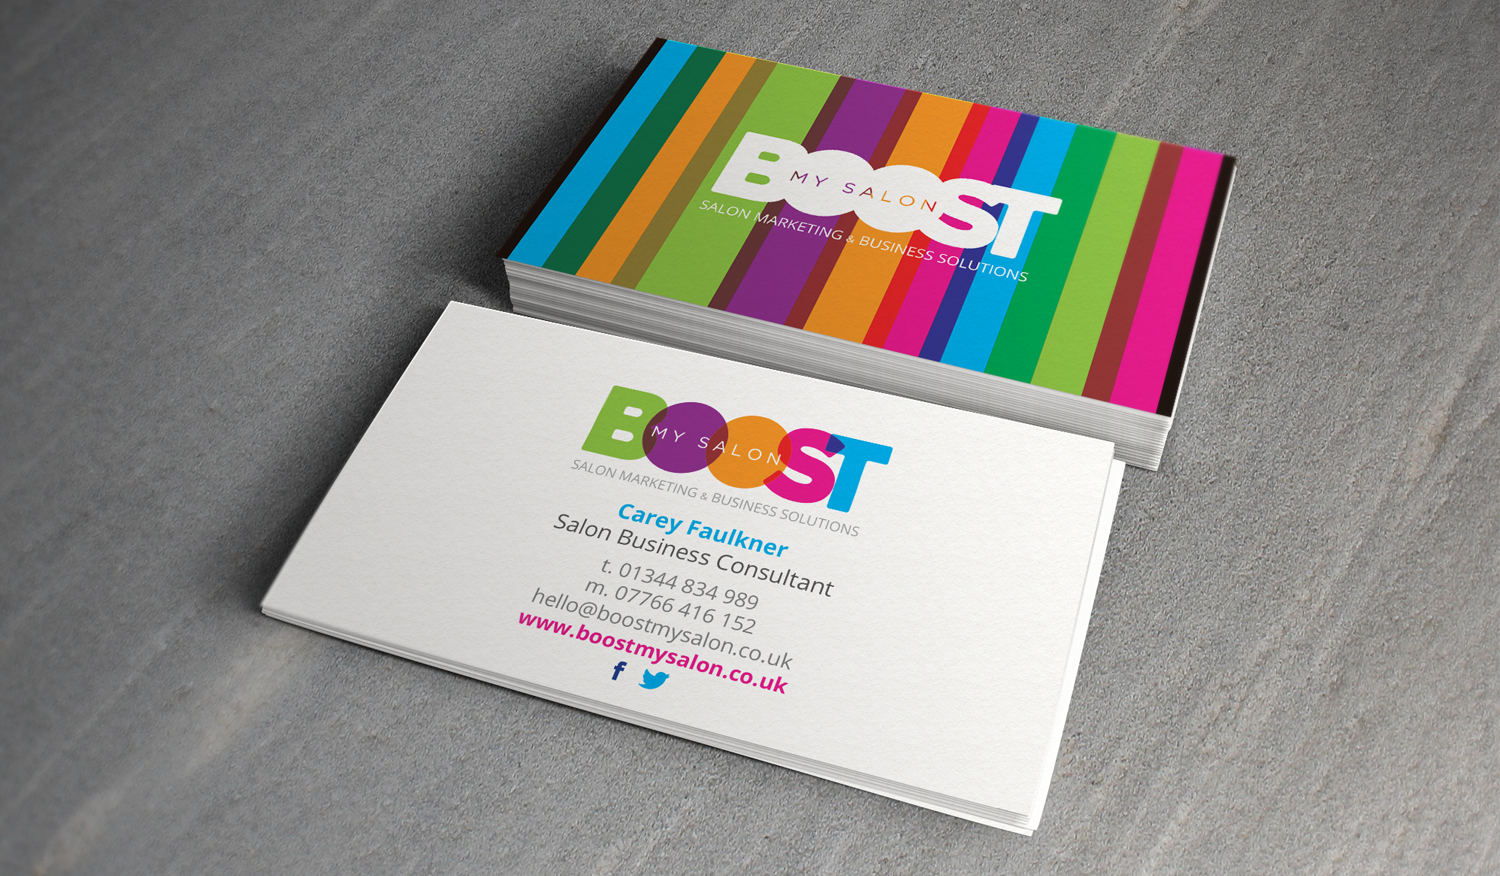 BOOSTmySALON Business Card Designs